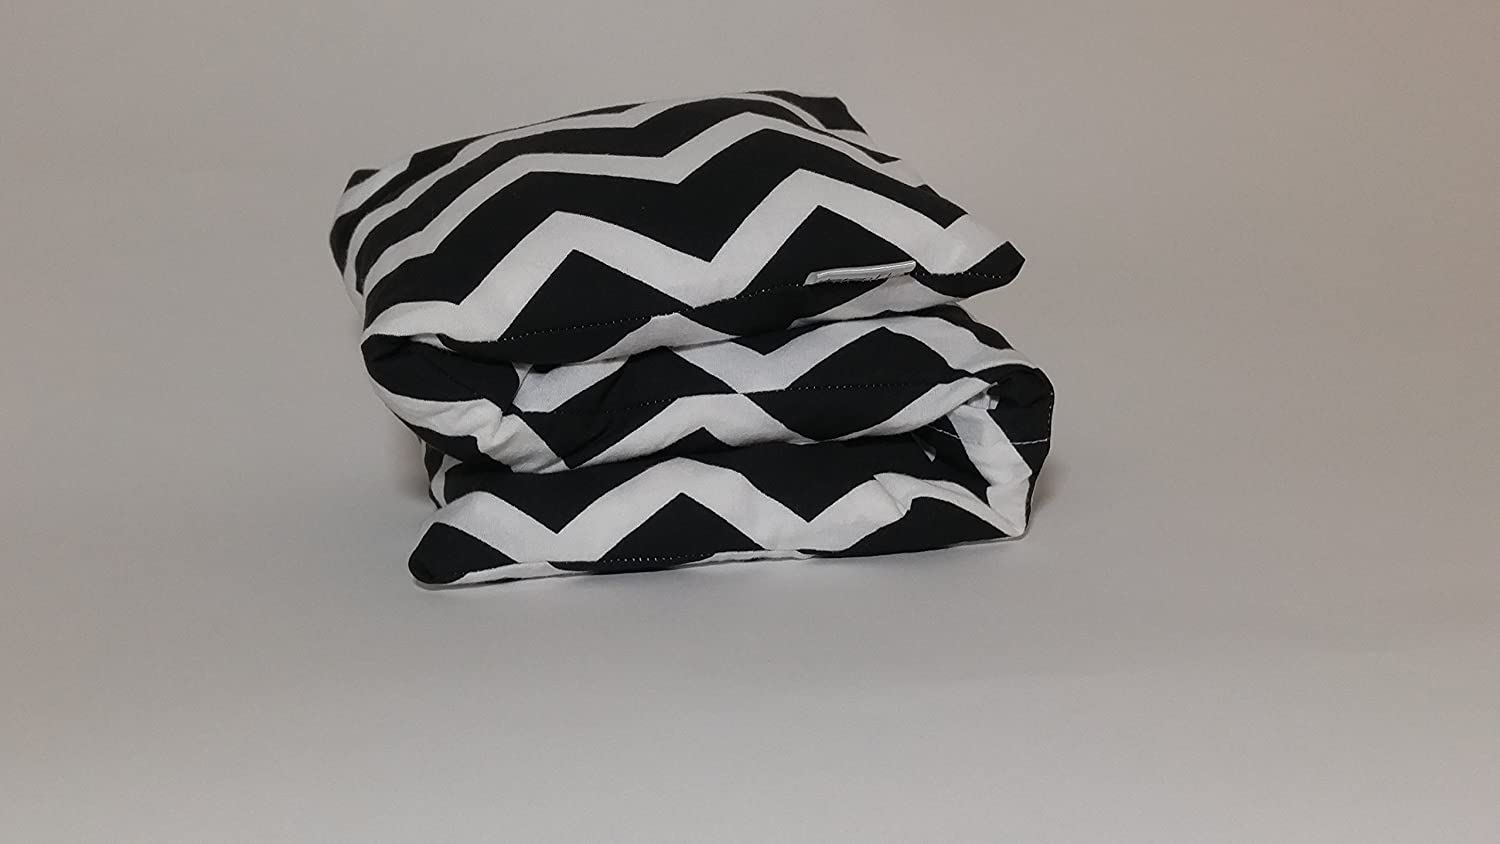 Microwaveable Heating Pad and Cold Therapy Bag with Washable Cover. Barley Buddy Filled with Barley. Black and White Chevron